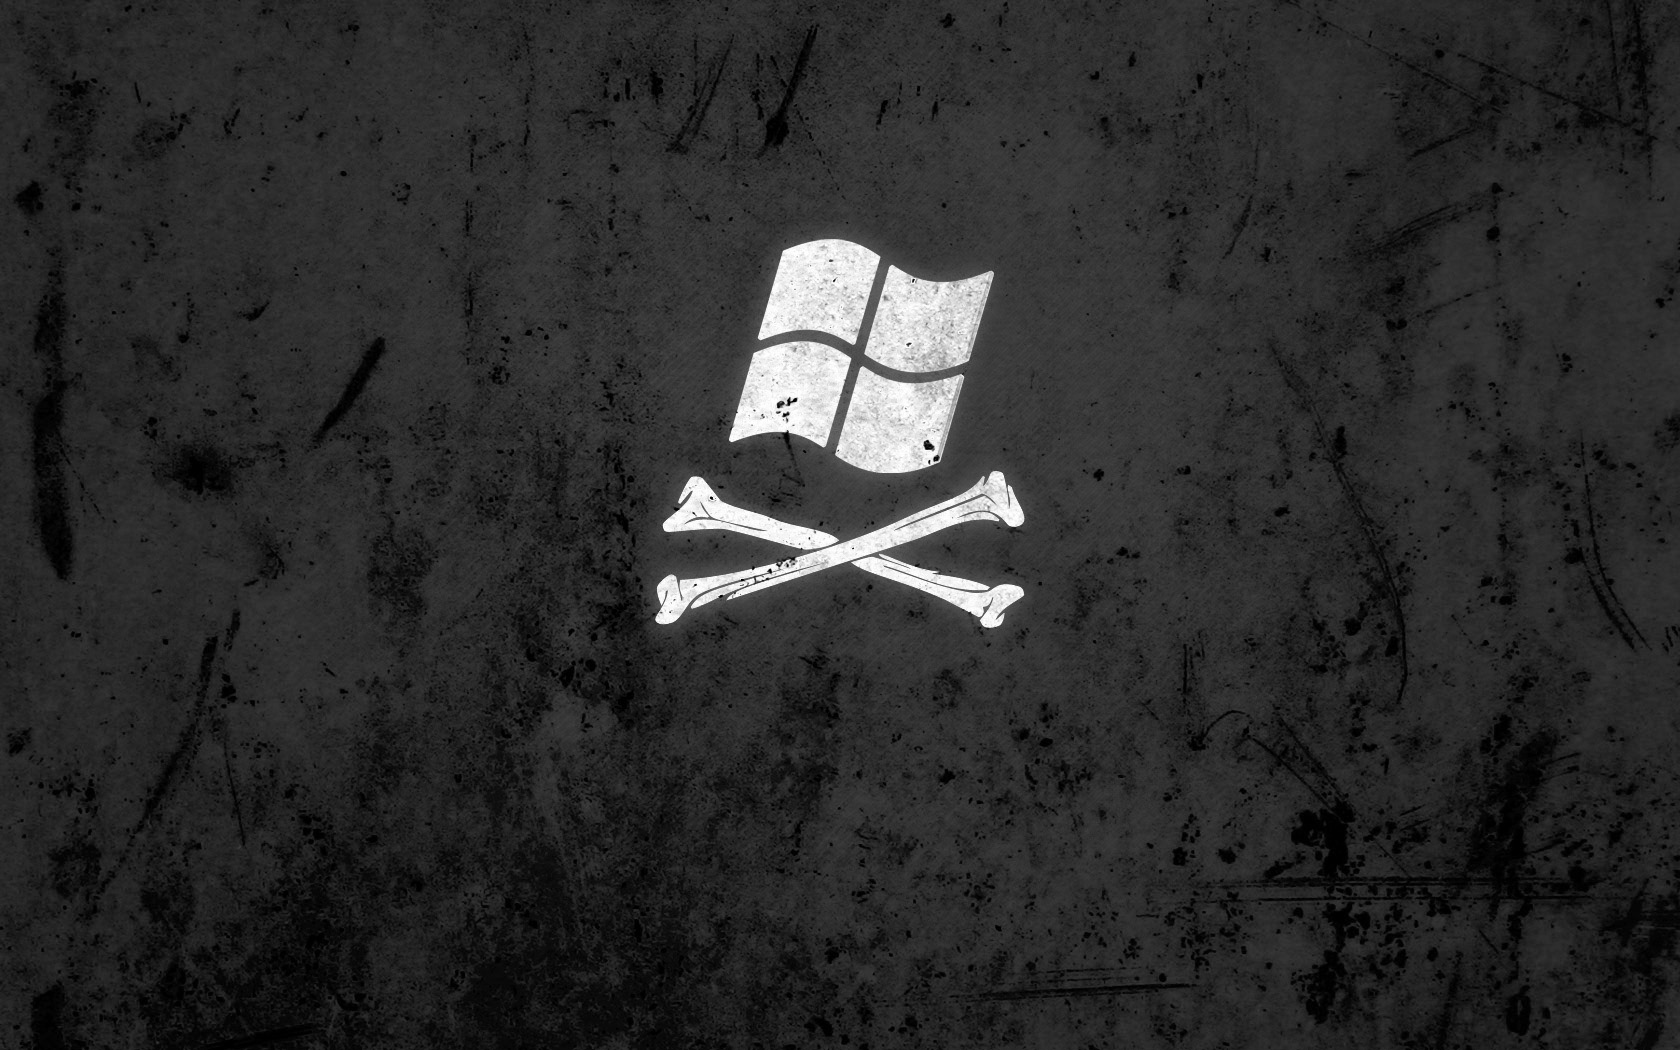 Funny, phone, wallpapers, wallpaper, kitchen, windows, pirate, charcoal2